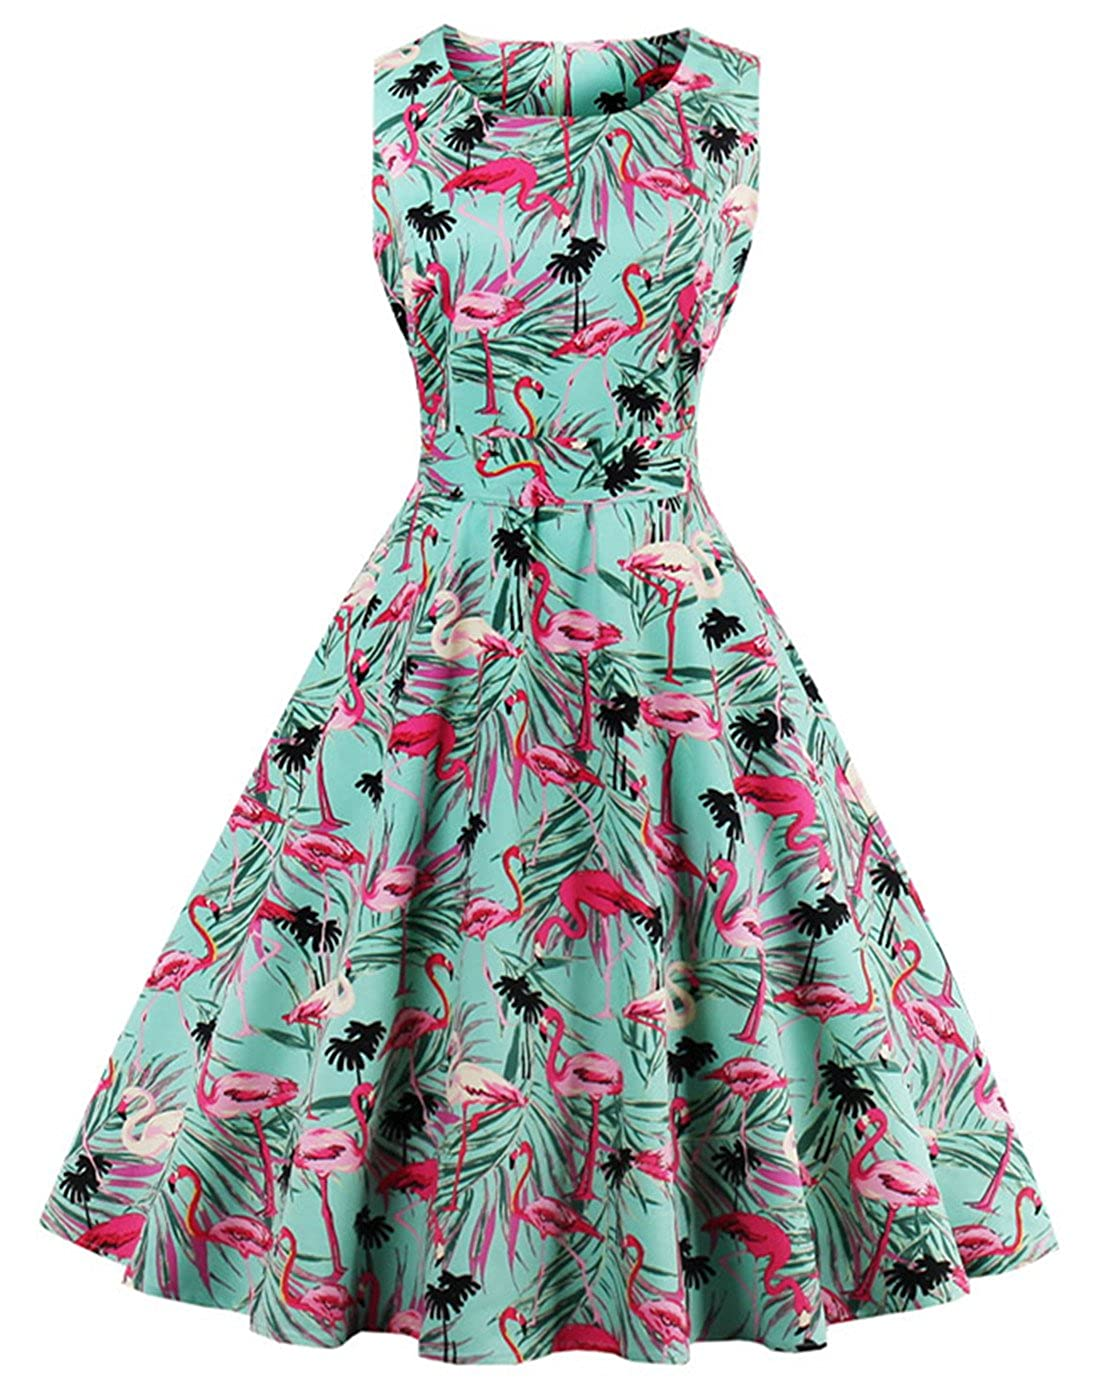 1950s Plus Size Dresses, Swing Dresses Wellwits Womens Tropical Leaf Flamingo Hepburn 1950s Vintage Swing Dress $24.98 AT vintagedancer.com